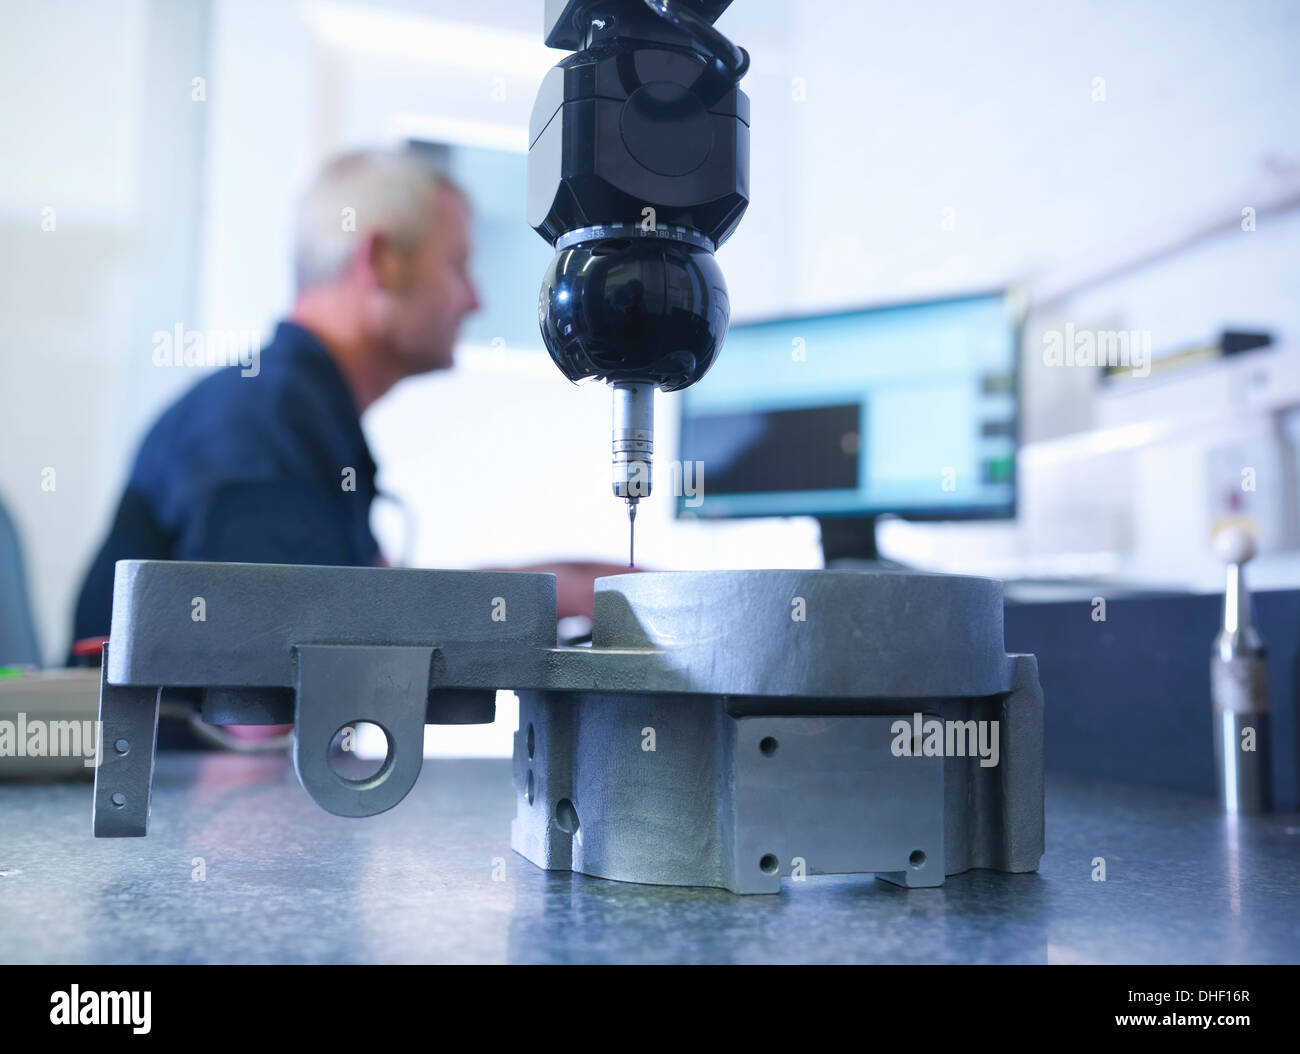 Engineer measuring components in factory - Stock Image